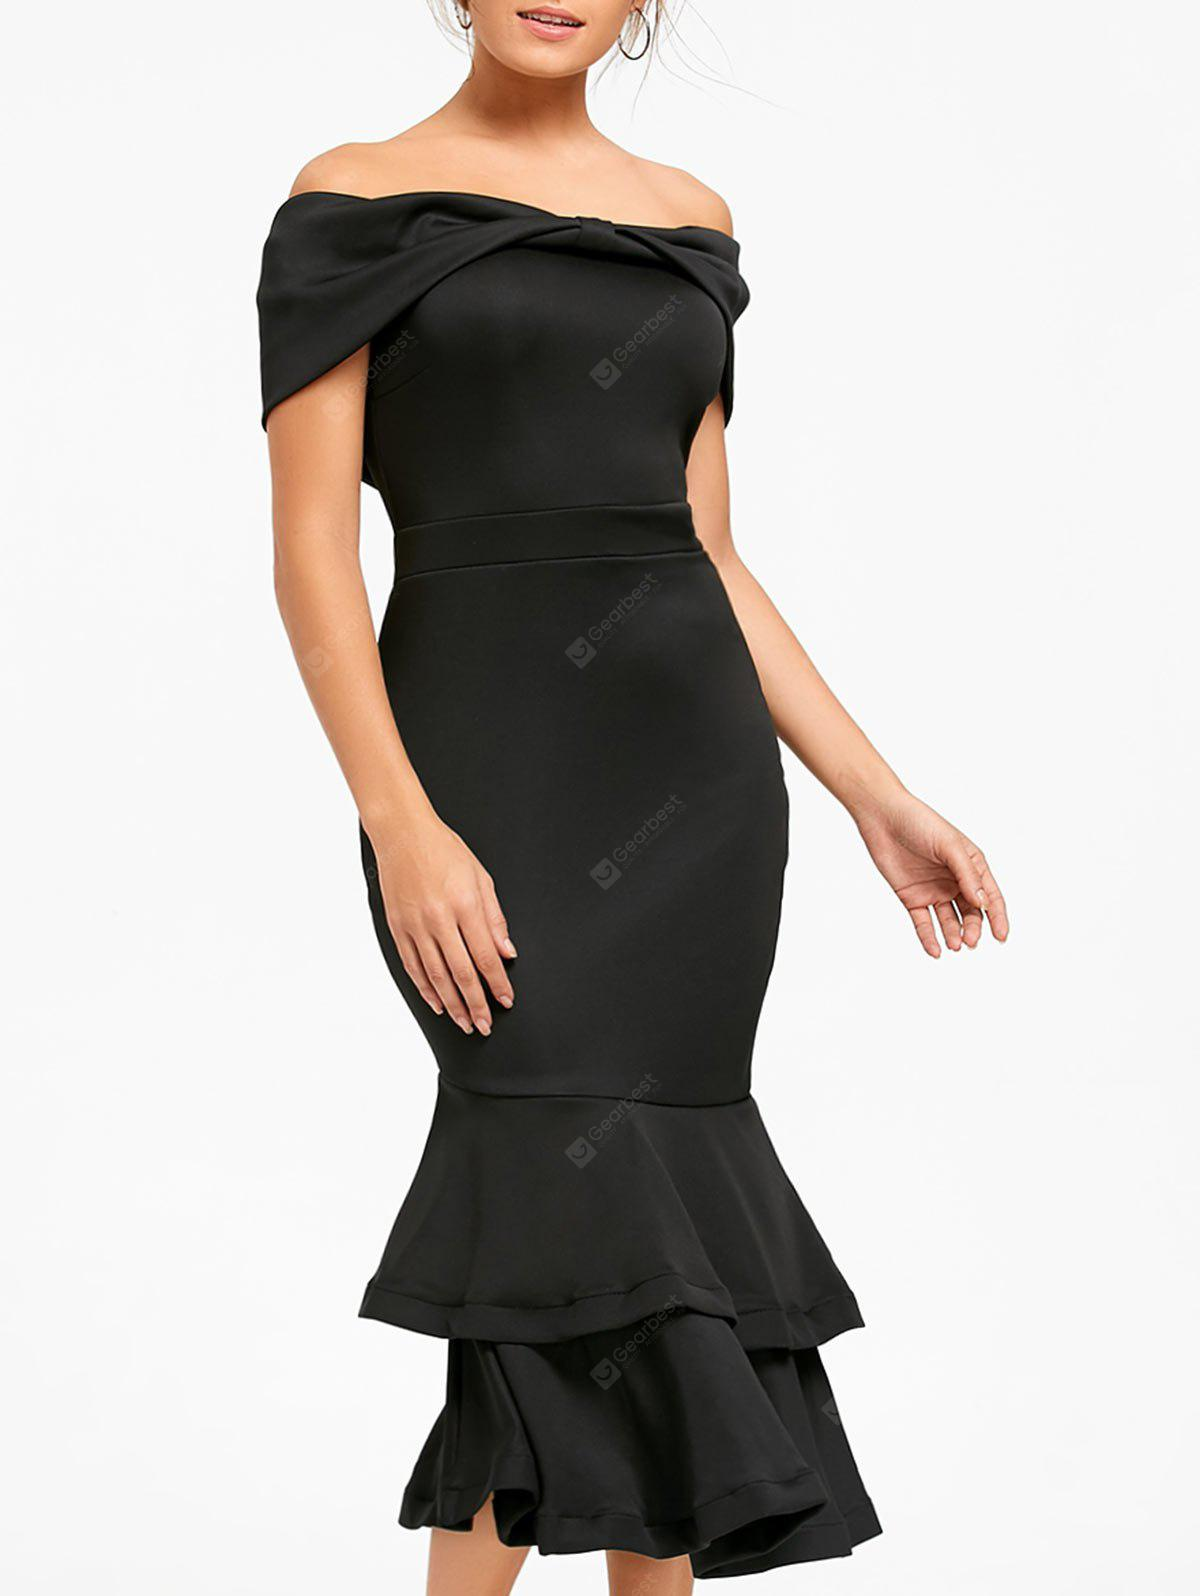 Bowknot Off The Shoulder Mermaid Bodycon Dress